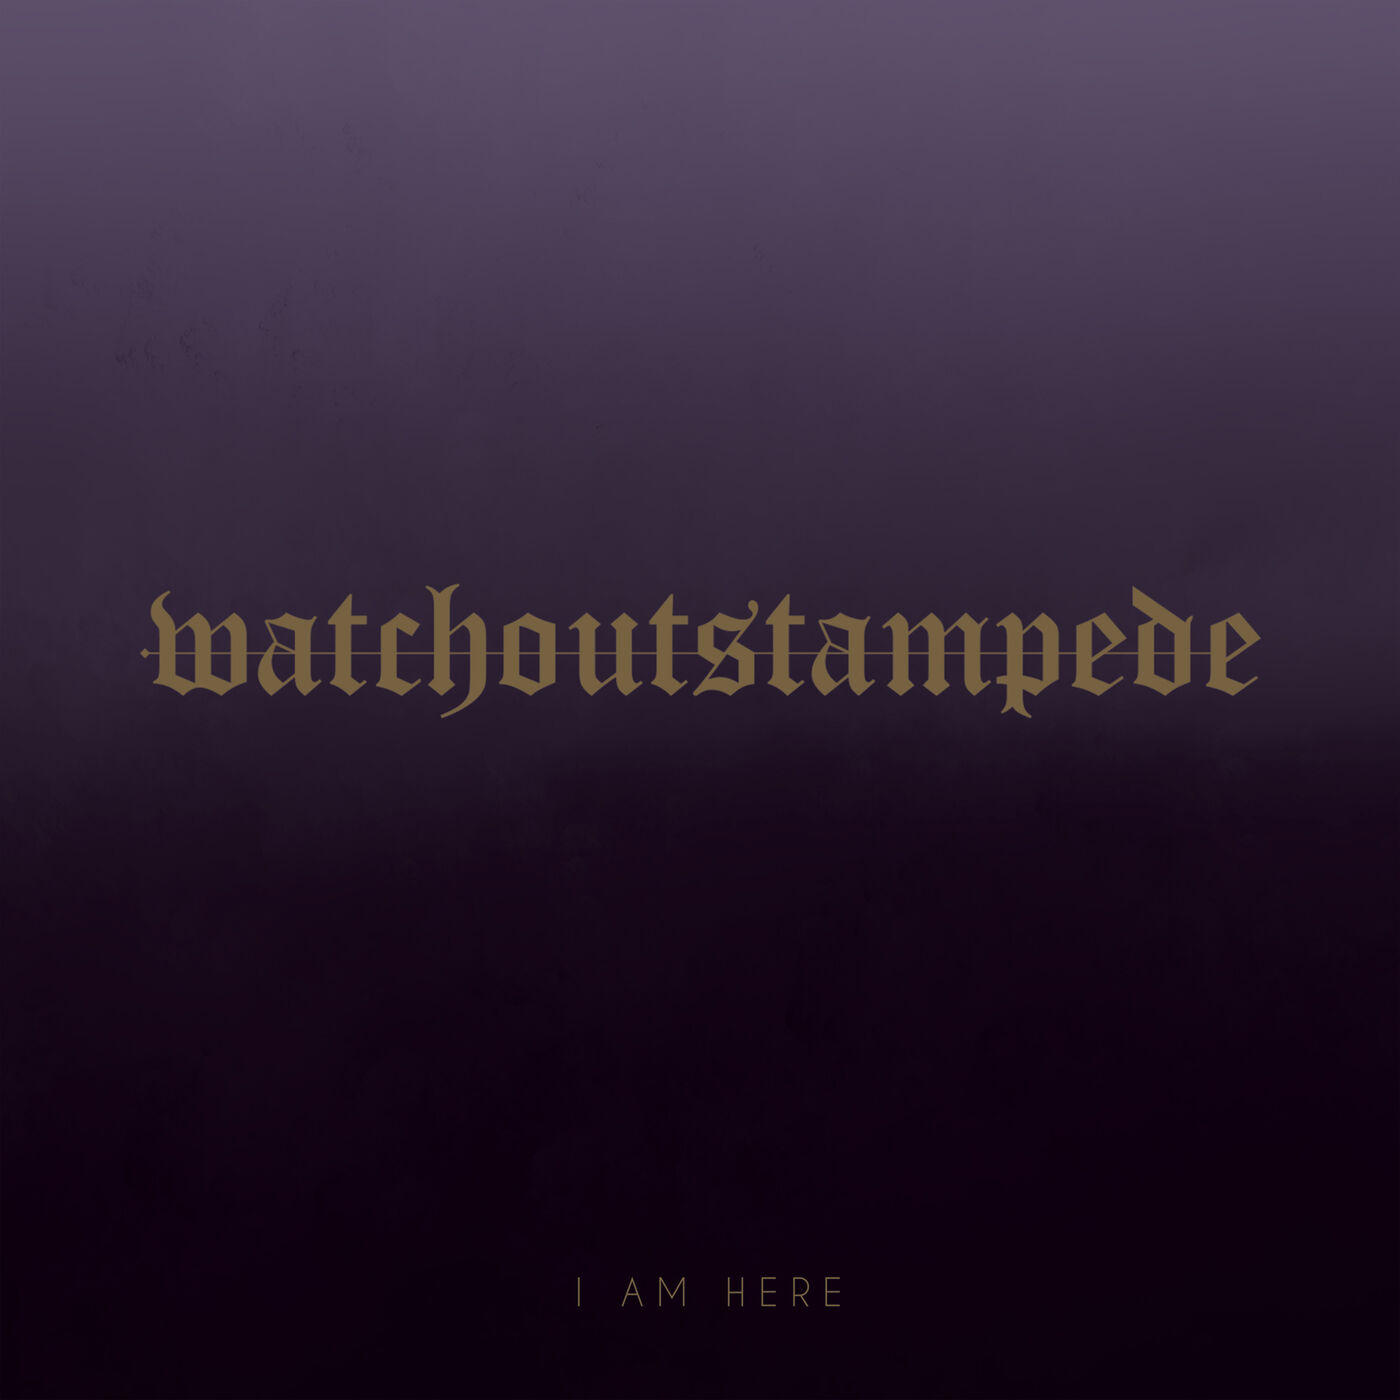 Watch Out Stampede - I Am Here [single] (2019)